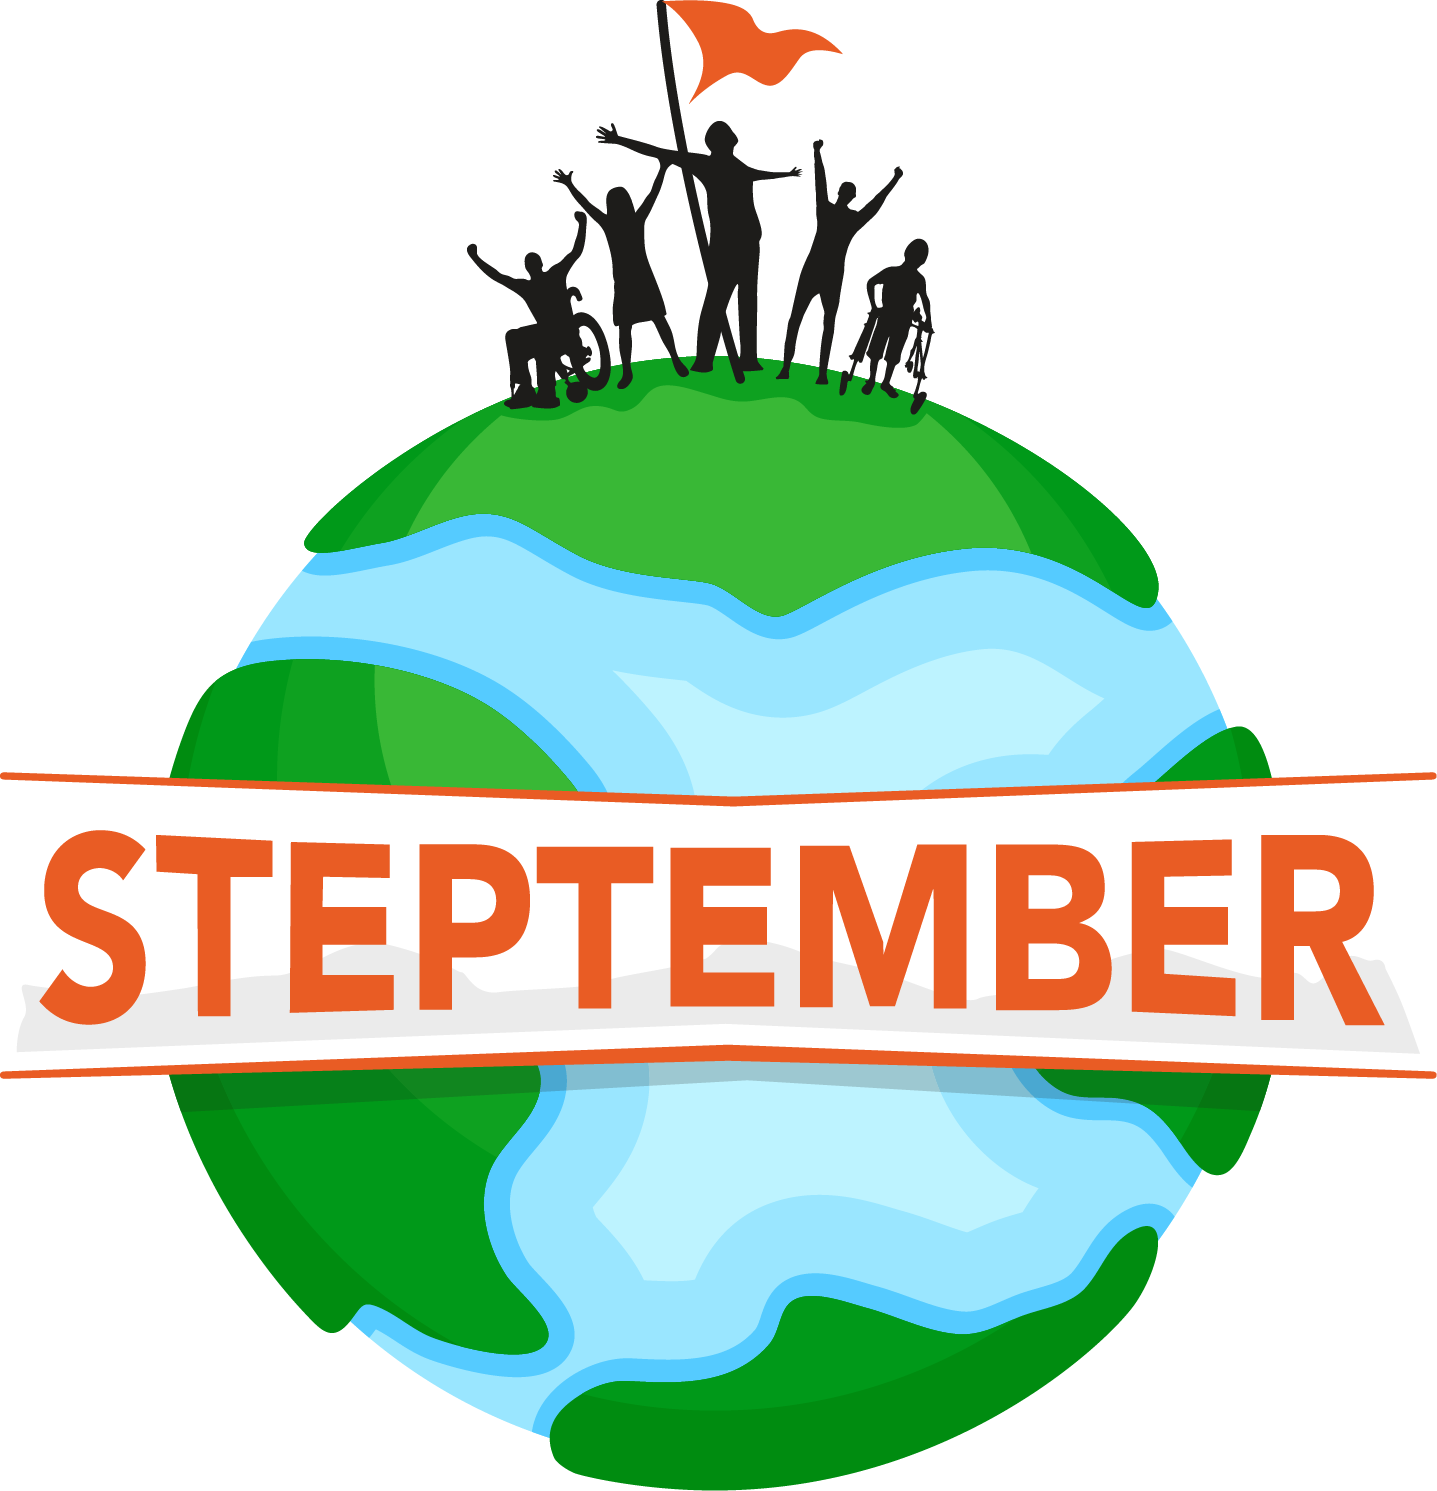 STEPtember. The best move you can make.